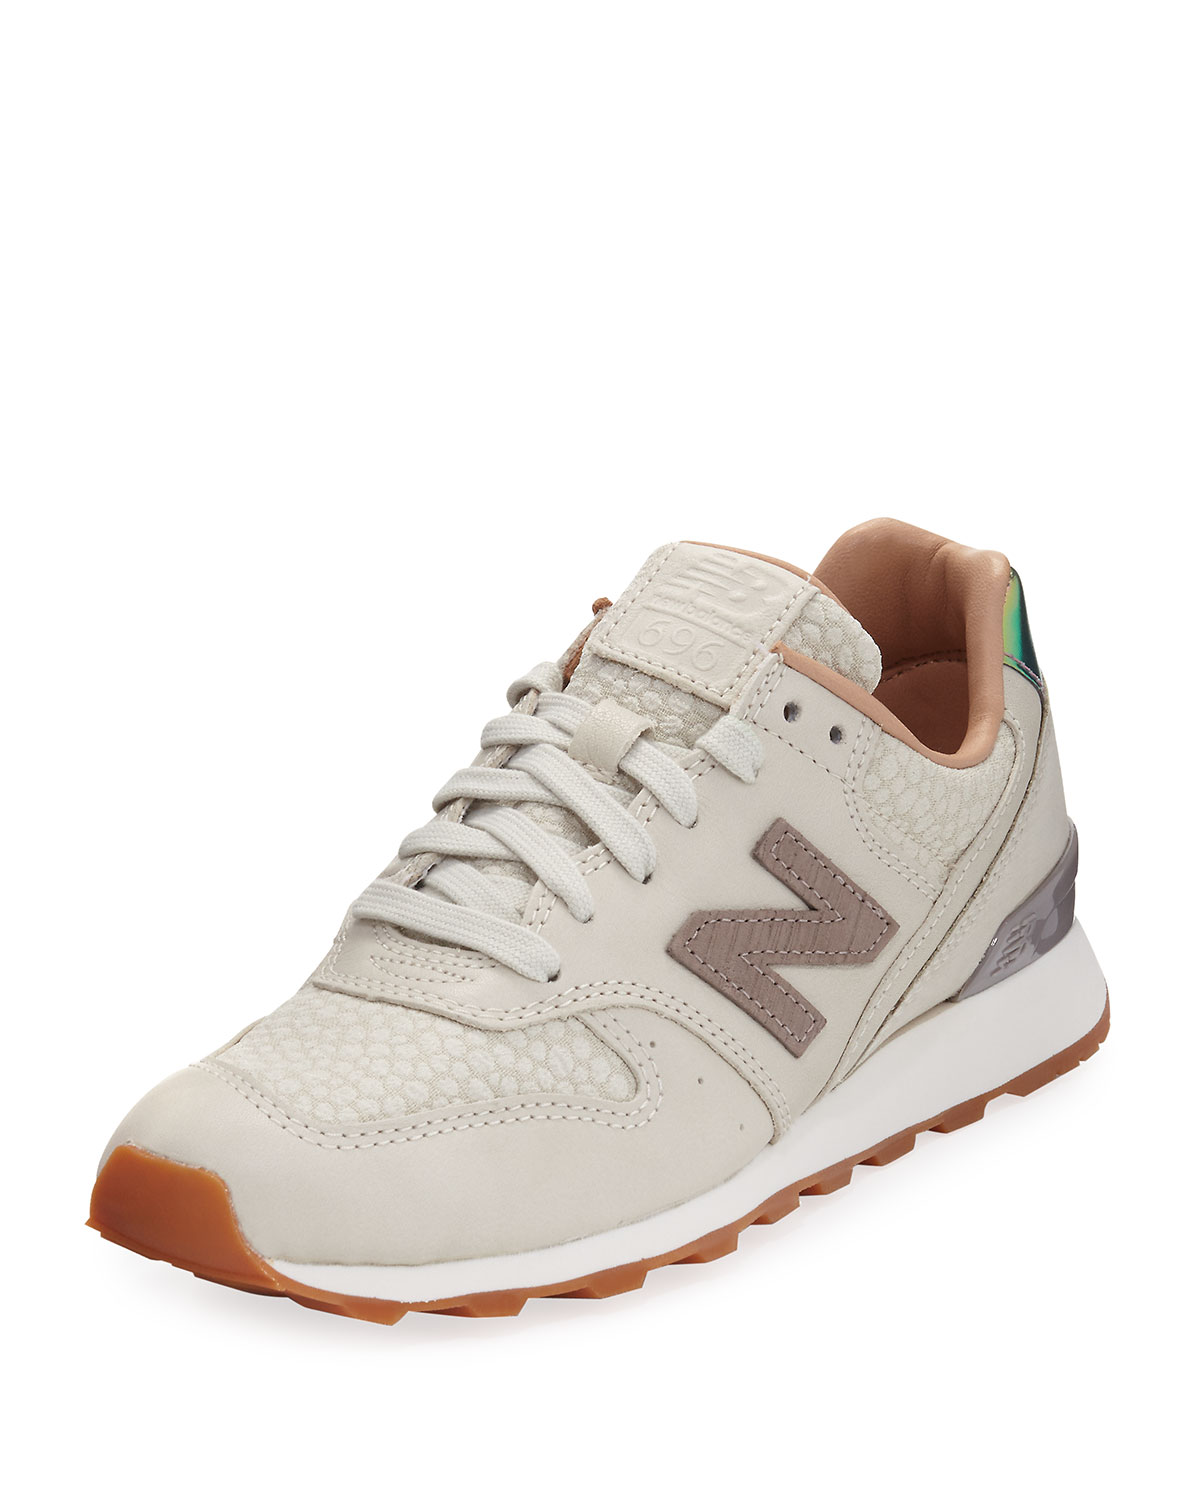 cb9a5ae1c2cd New Balance 696 Leather   Jacquard Sneakers